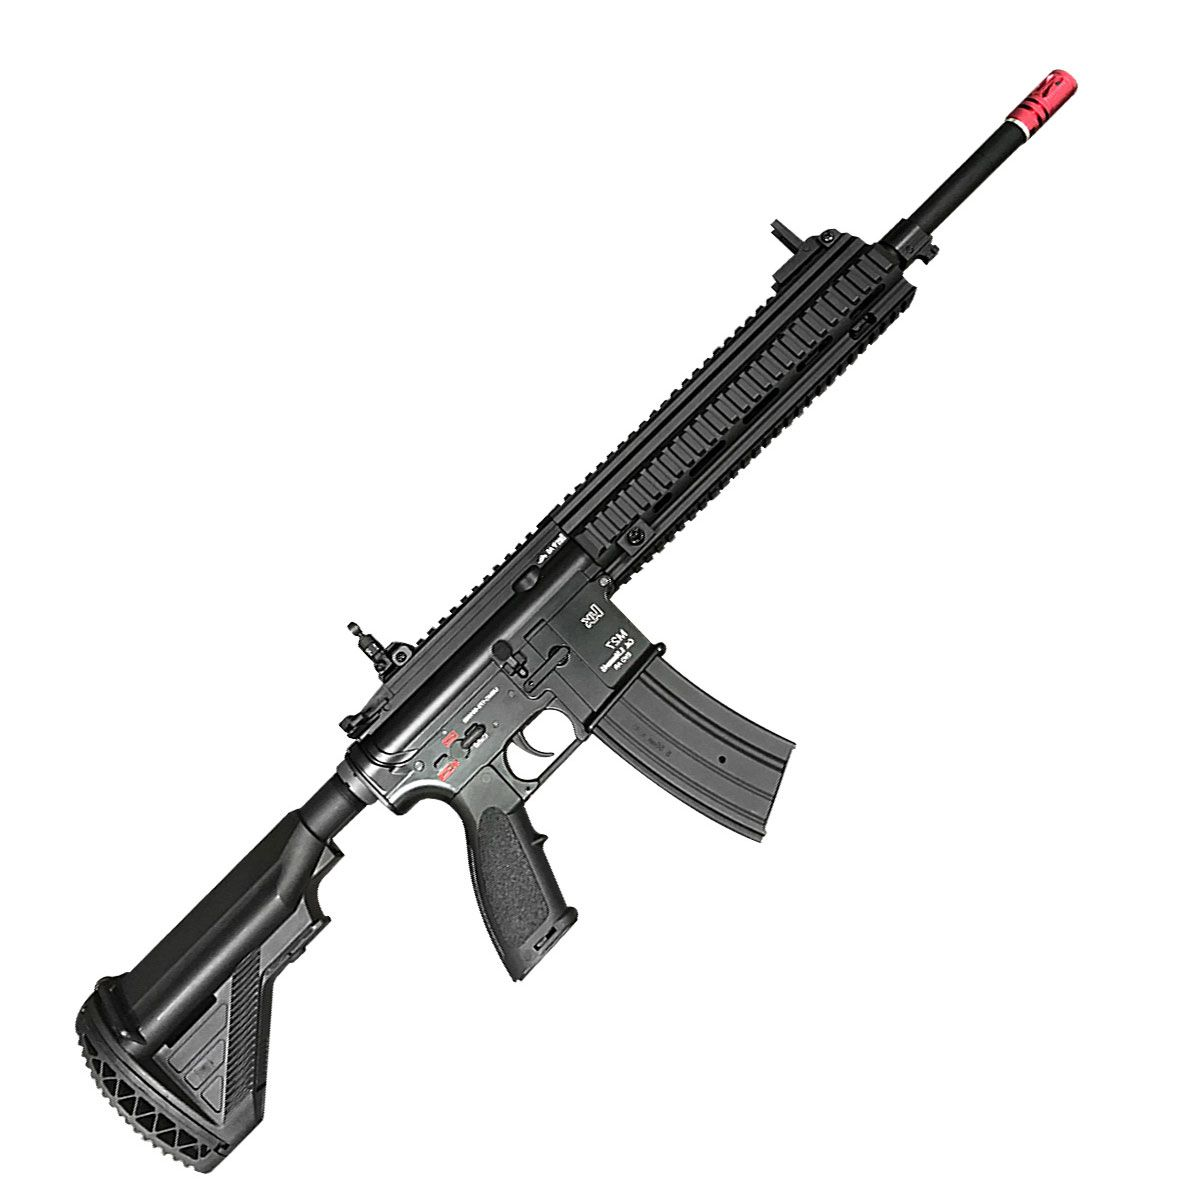 Rifle de Airsoft Evo HK416 M27 CQB Full Metal Elétrico 6mm